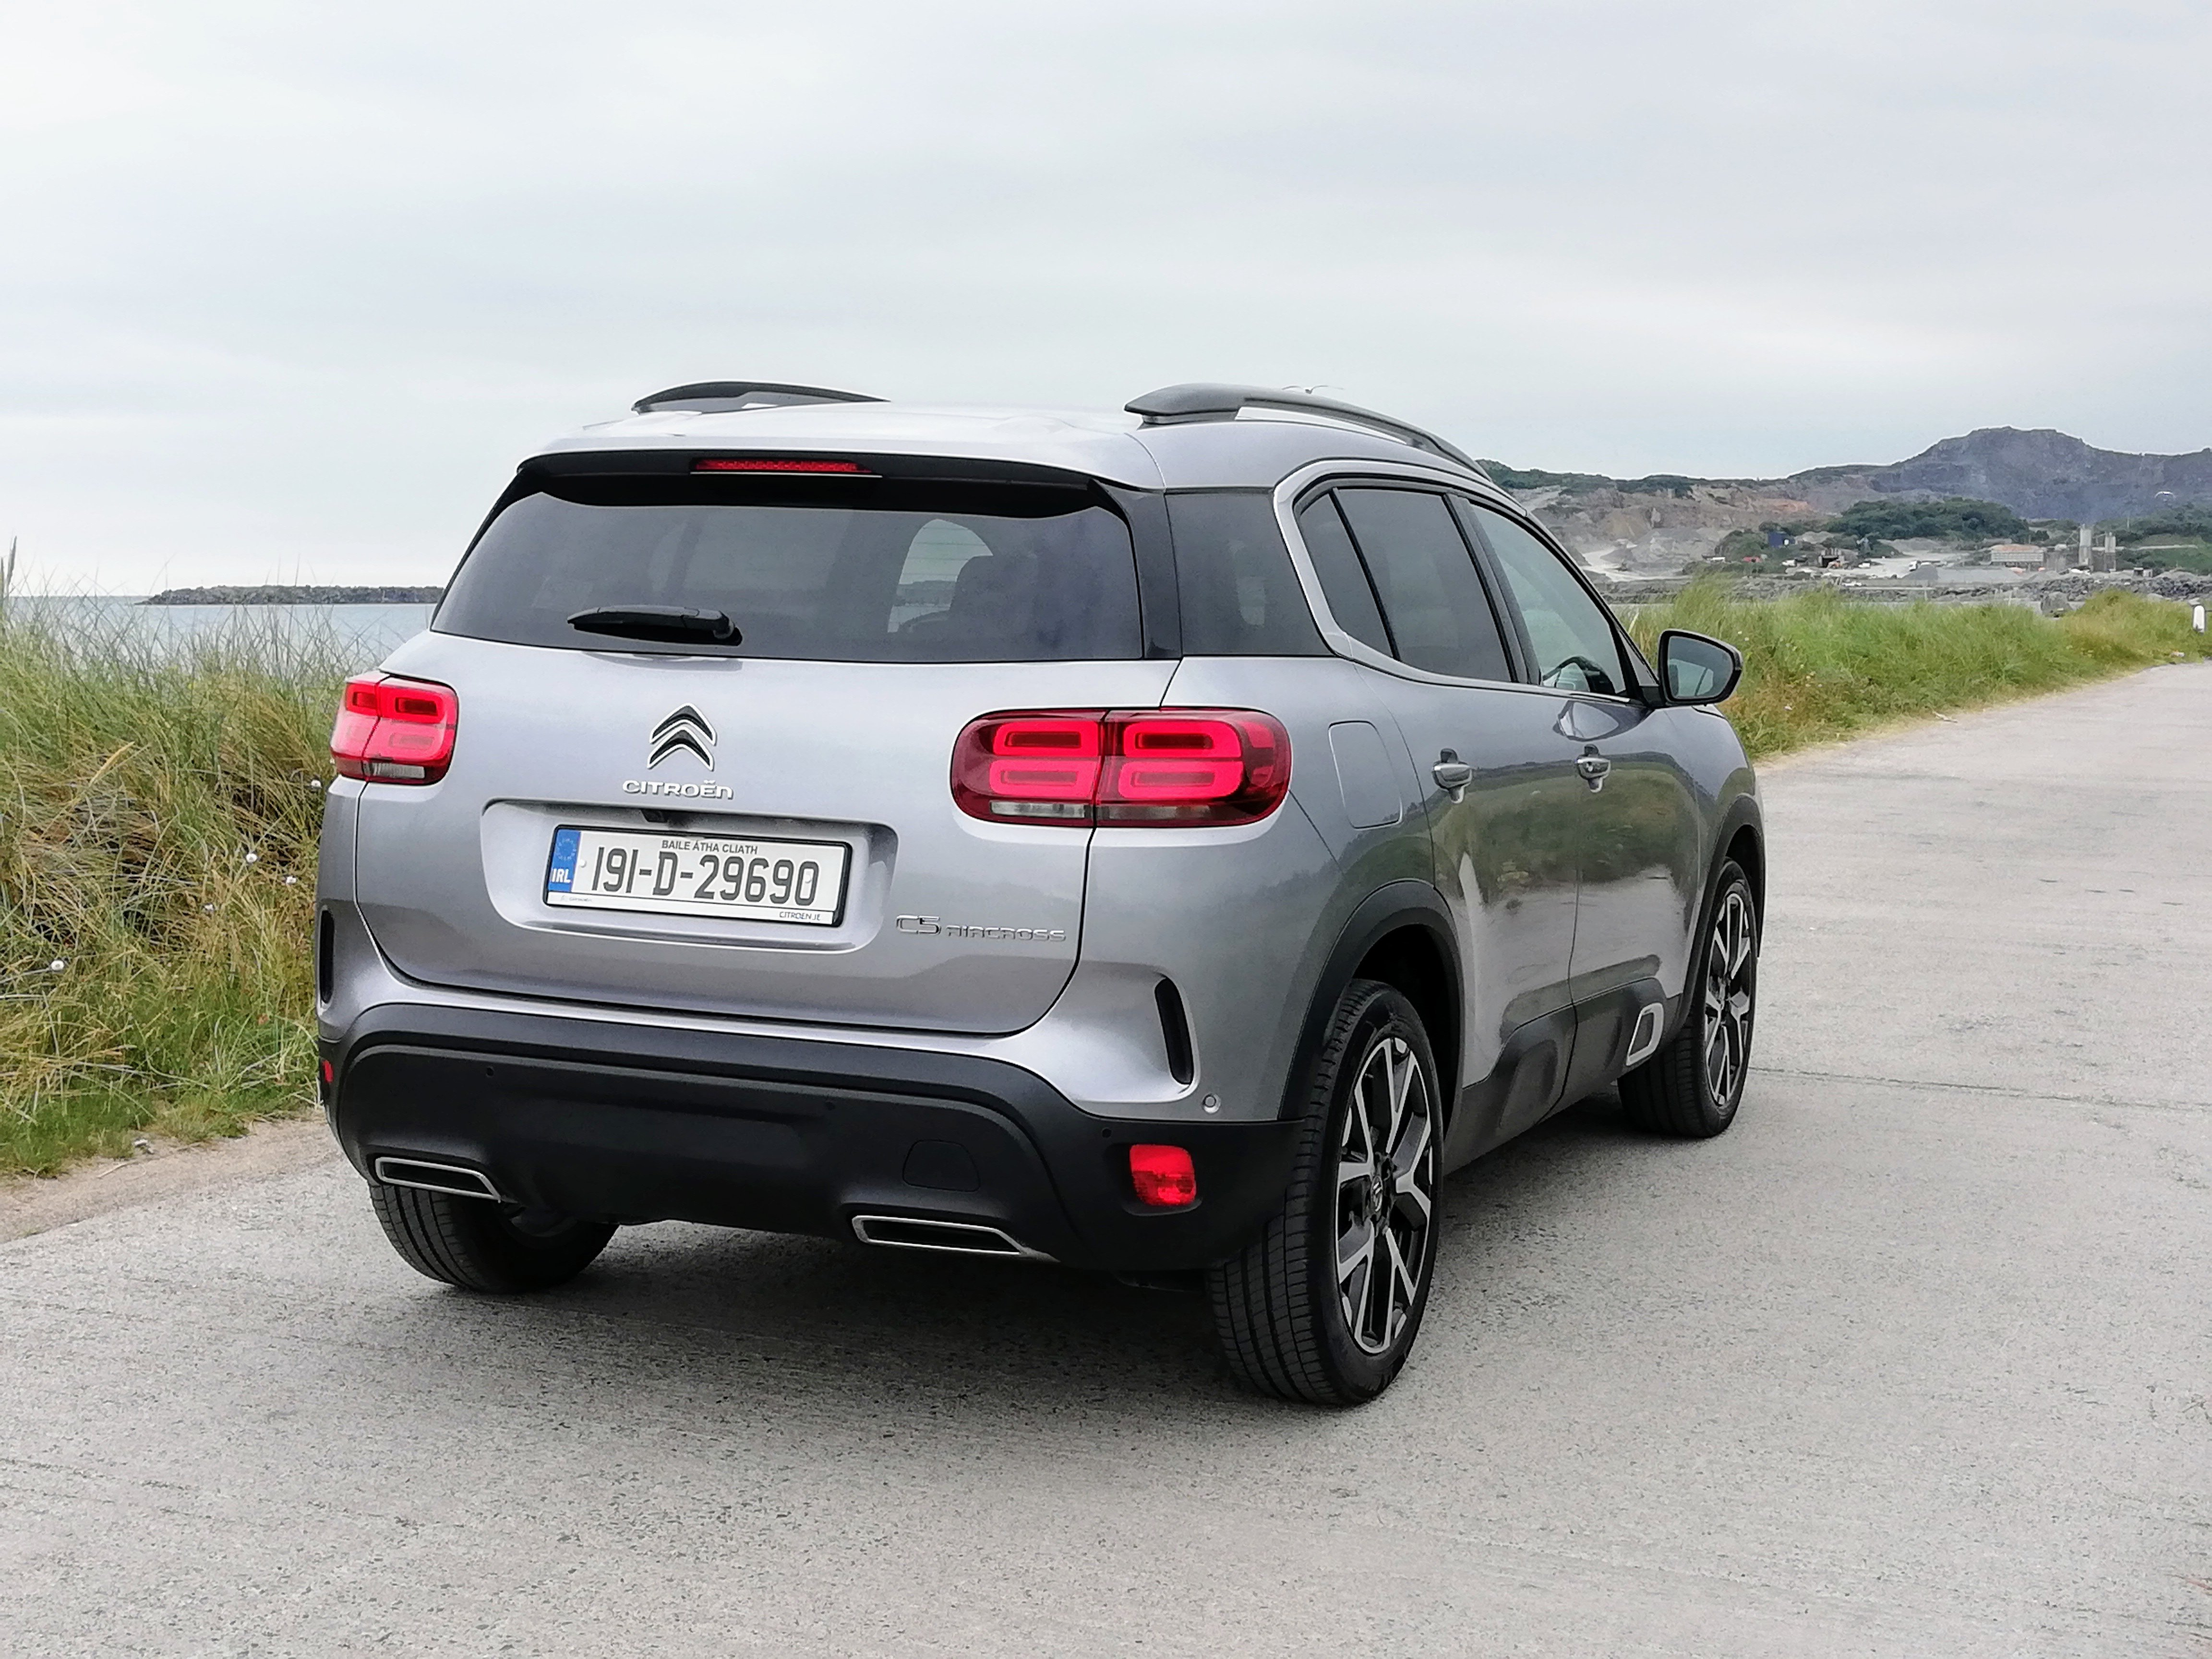 The Citroen C5 Aircross is available from €26,495